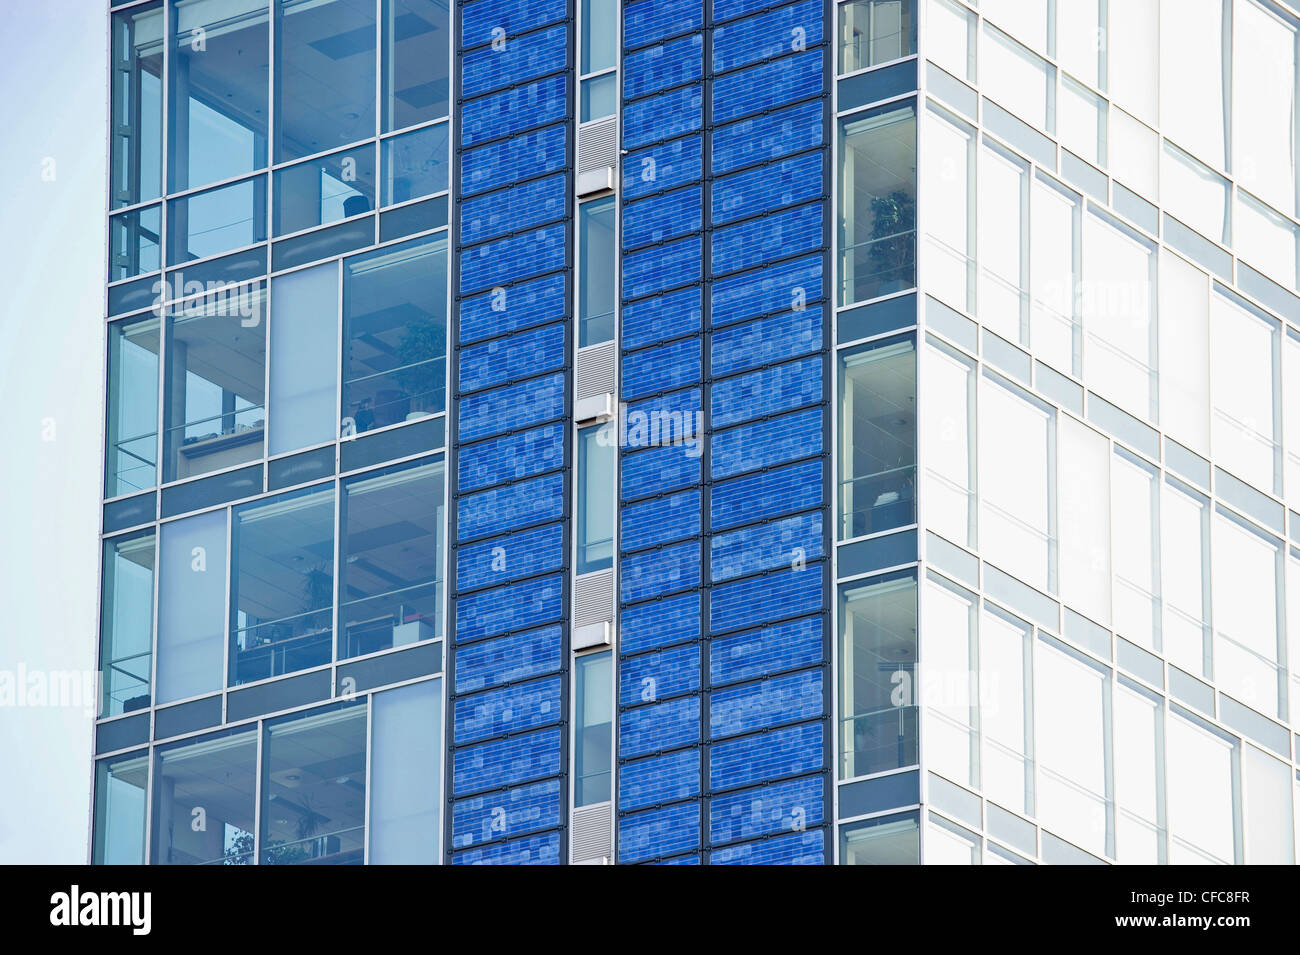 High-rise building with photovoltaic panels, Freiburg im Breisgau, Baden-Wurttemberg, Germany - Stock Image